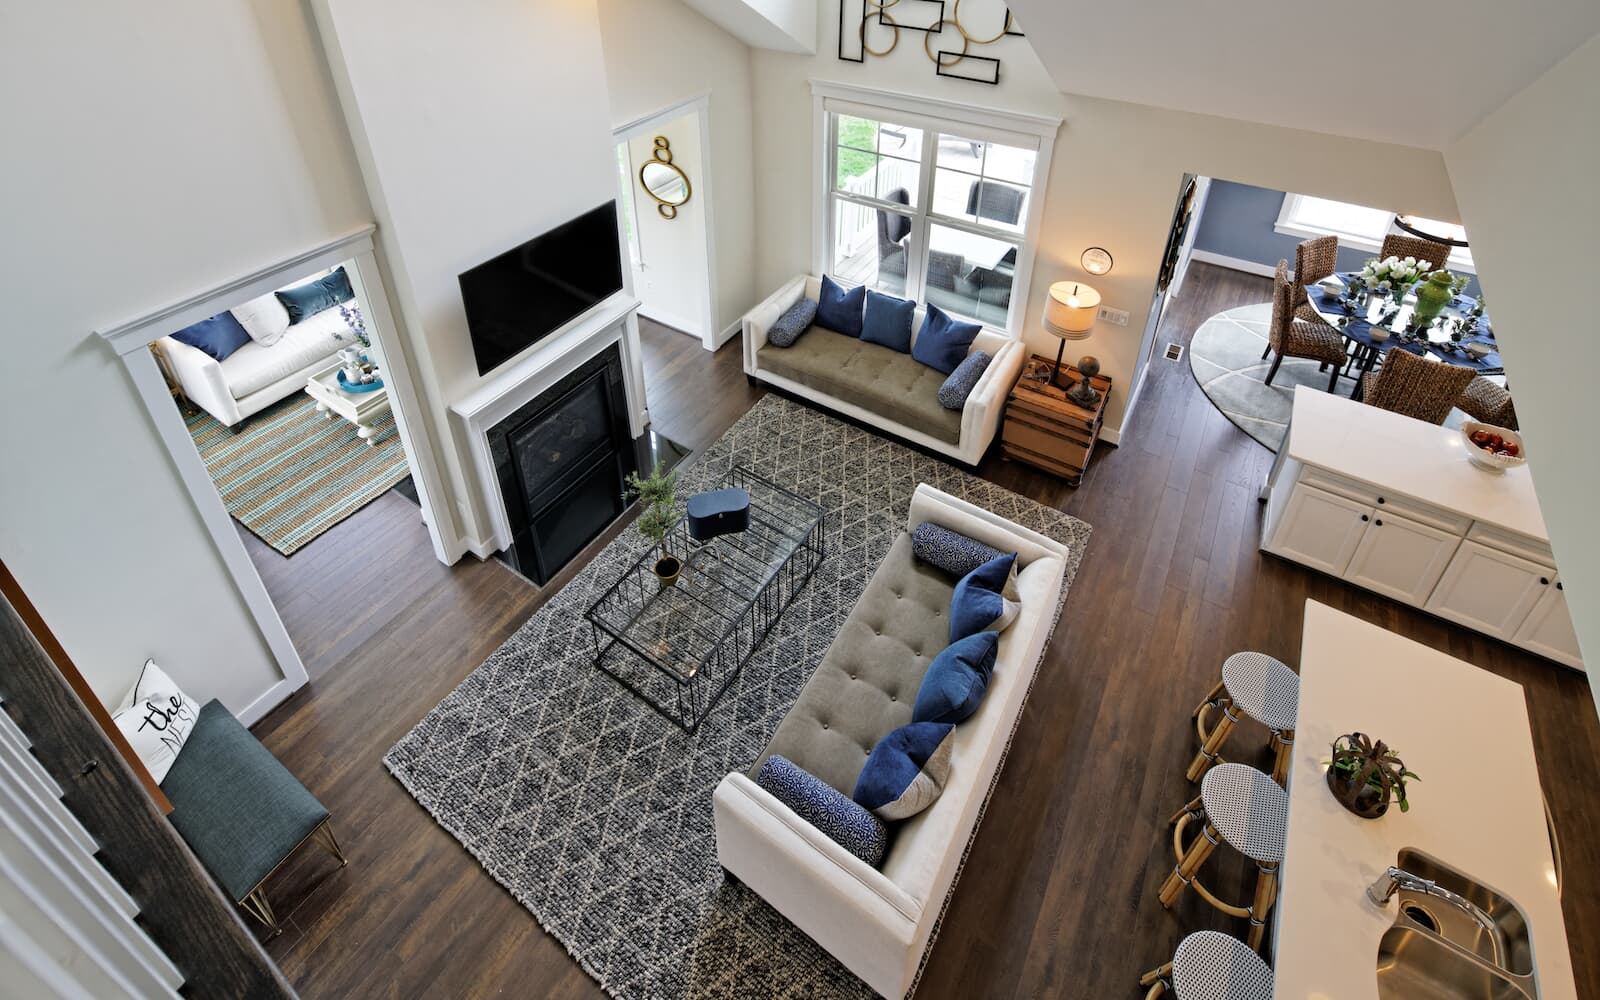 Cresswell-living-room-aerial-single-family-homes-leesburg-va-waterford-manor-brookfield-residential